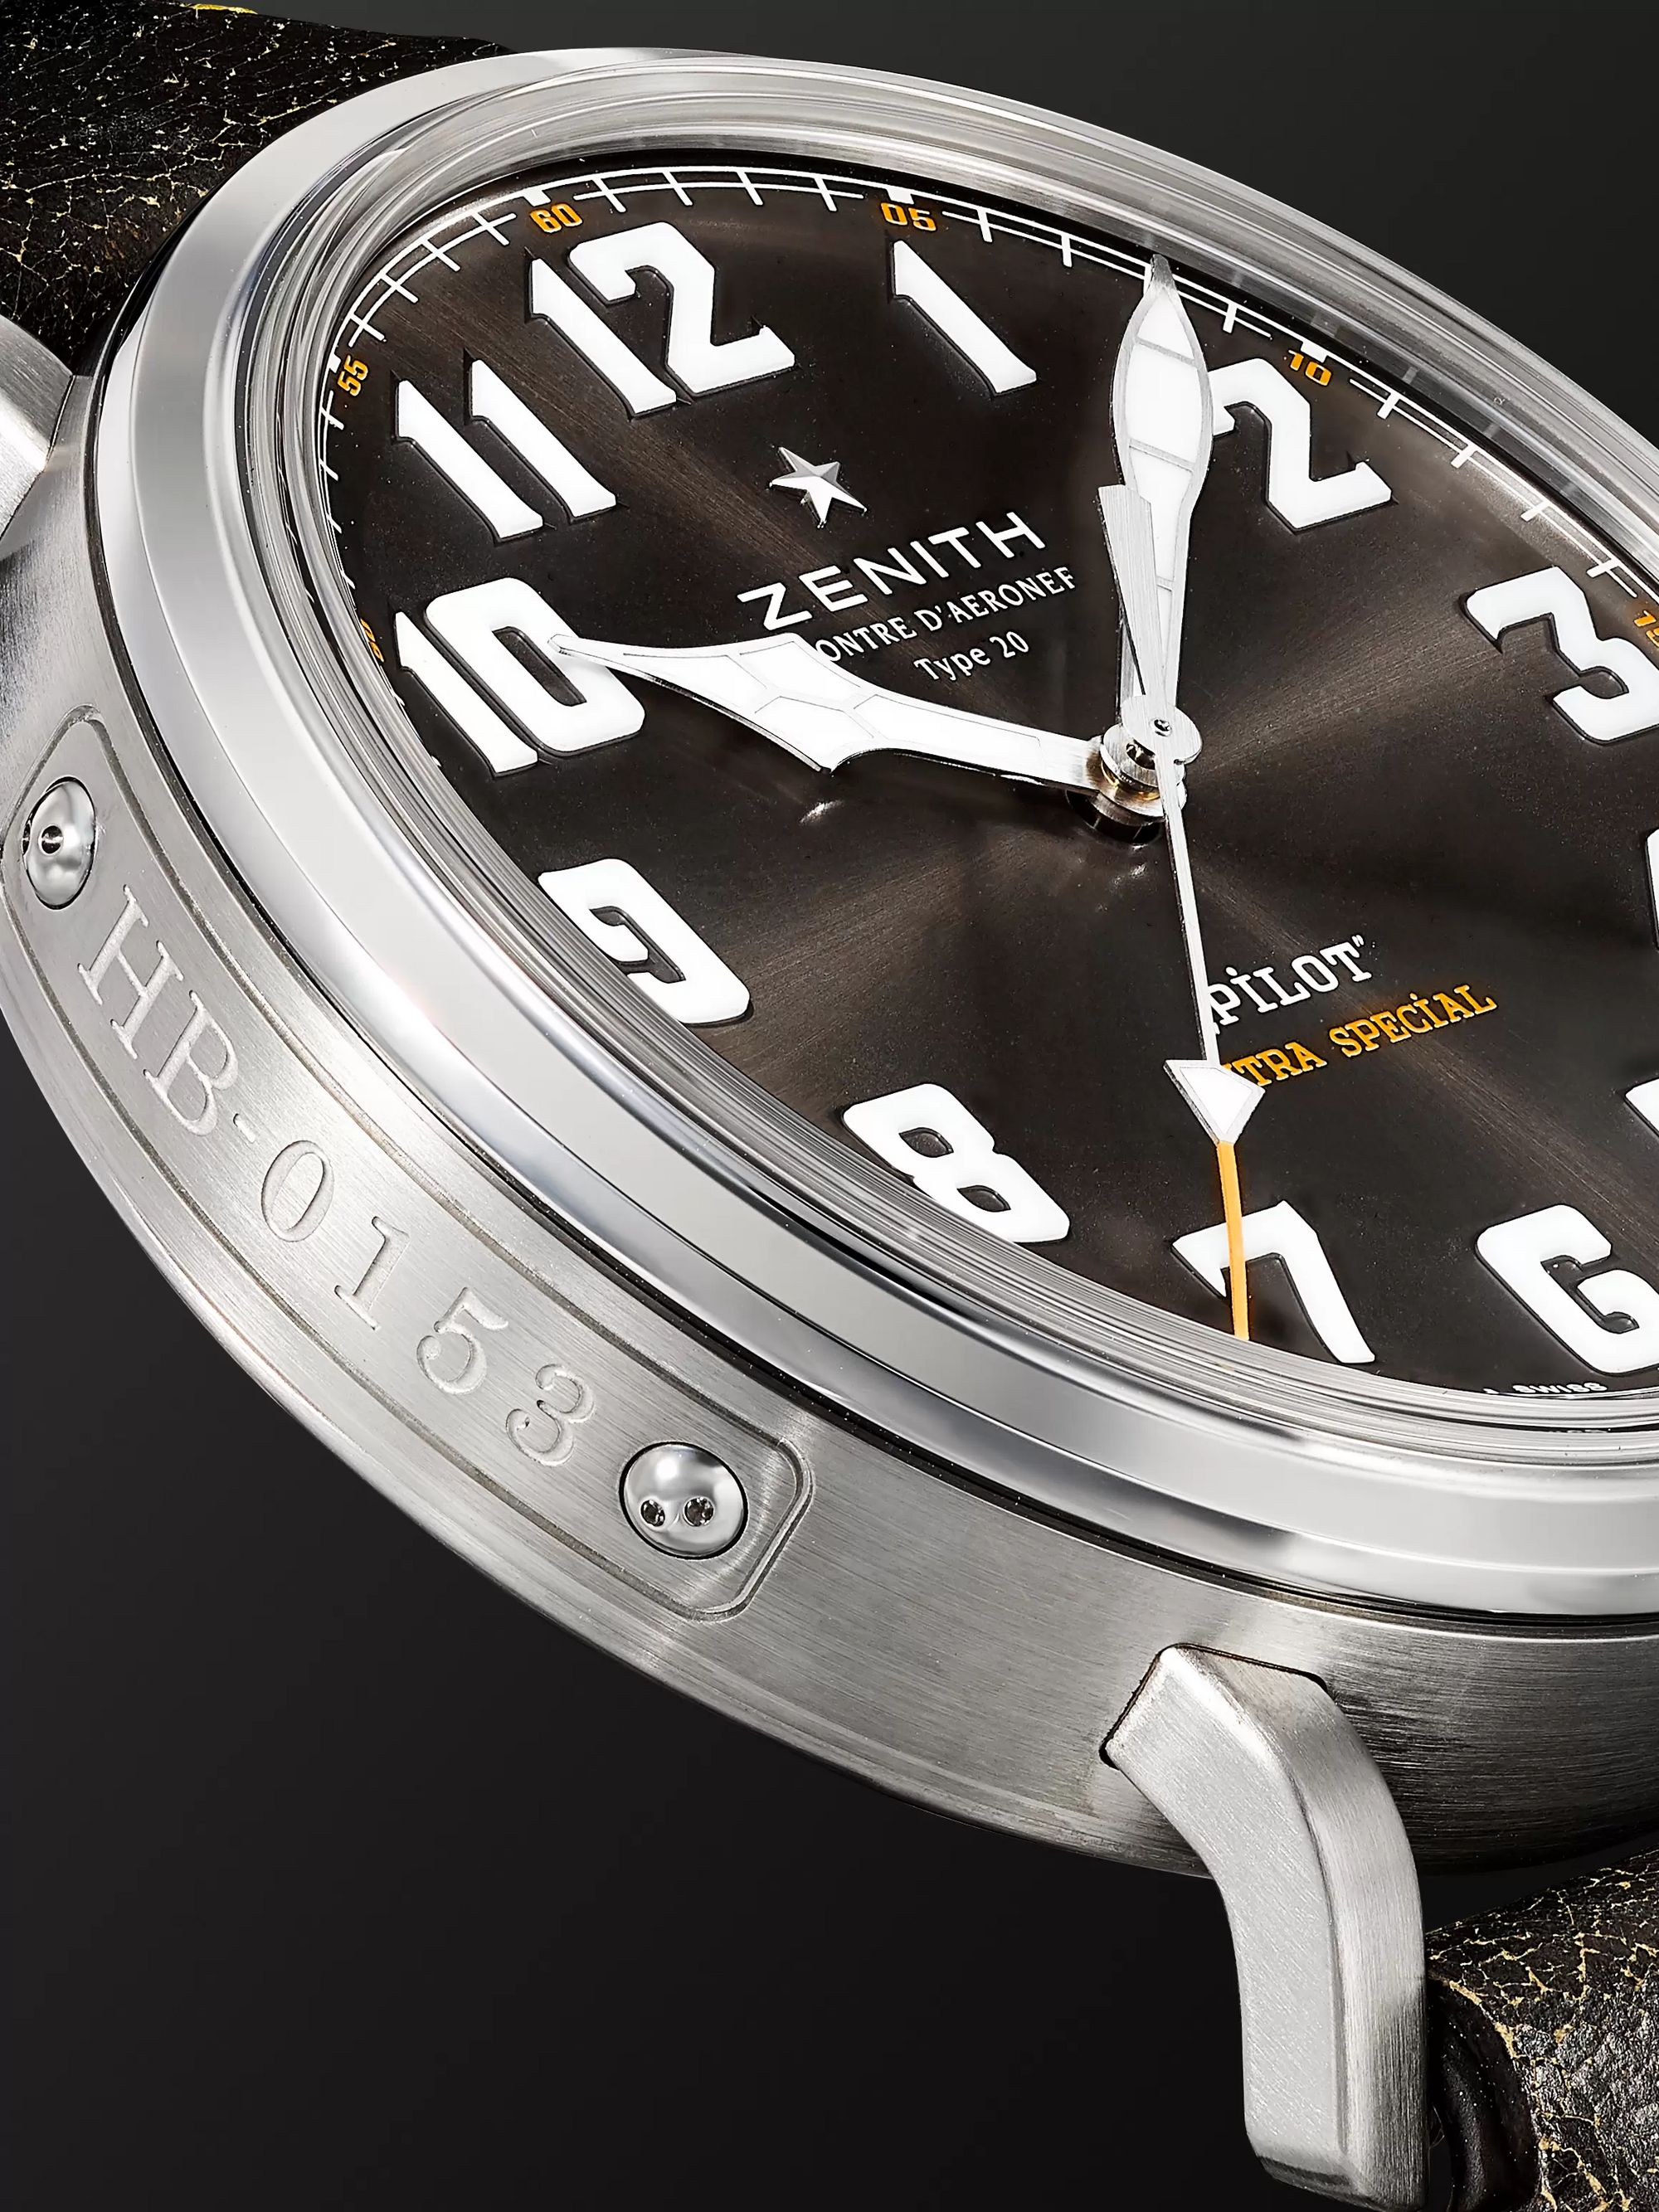 ZENITH Pilot Type 20 Rescue Automatic 45mm Stainless Steel and Leather Watch, Ref. No. 03.2434.679/20.1010